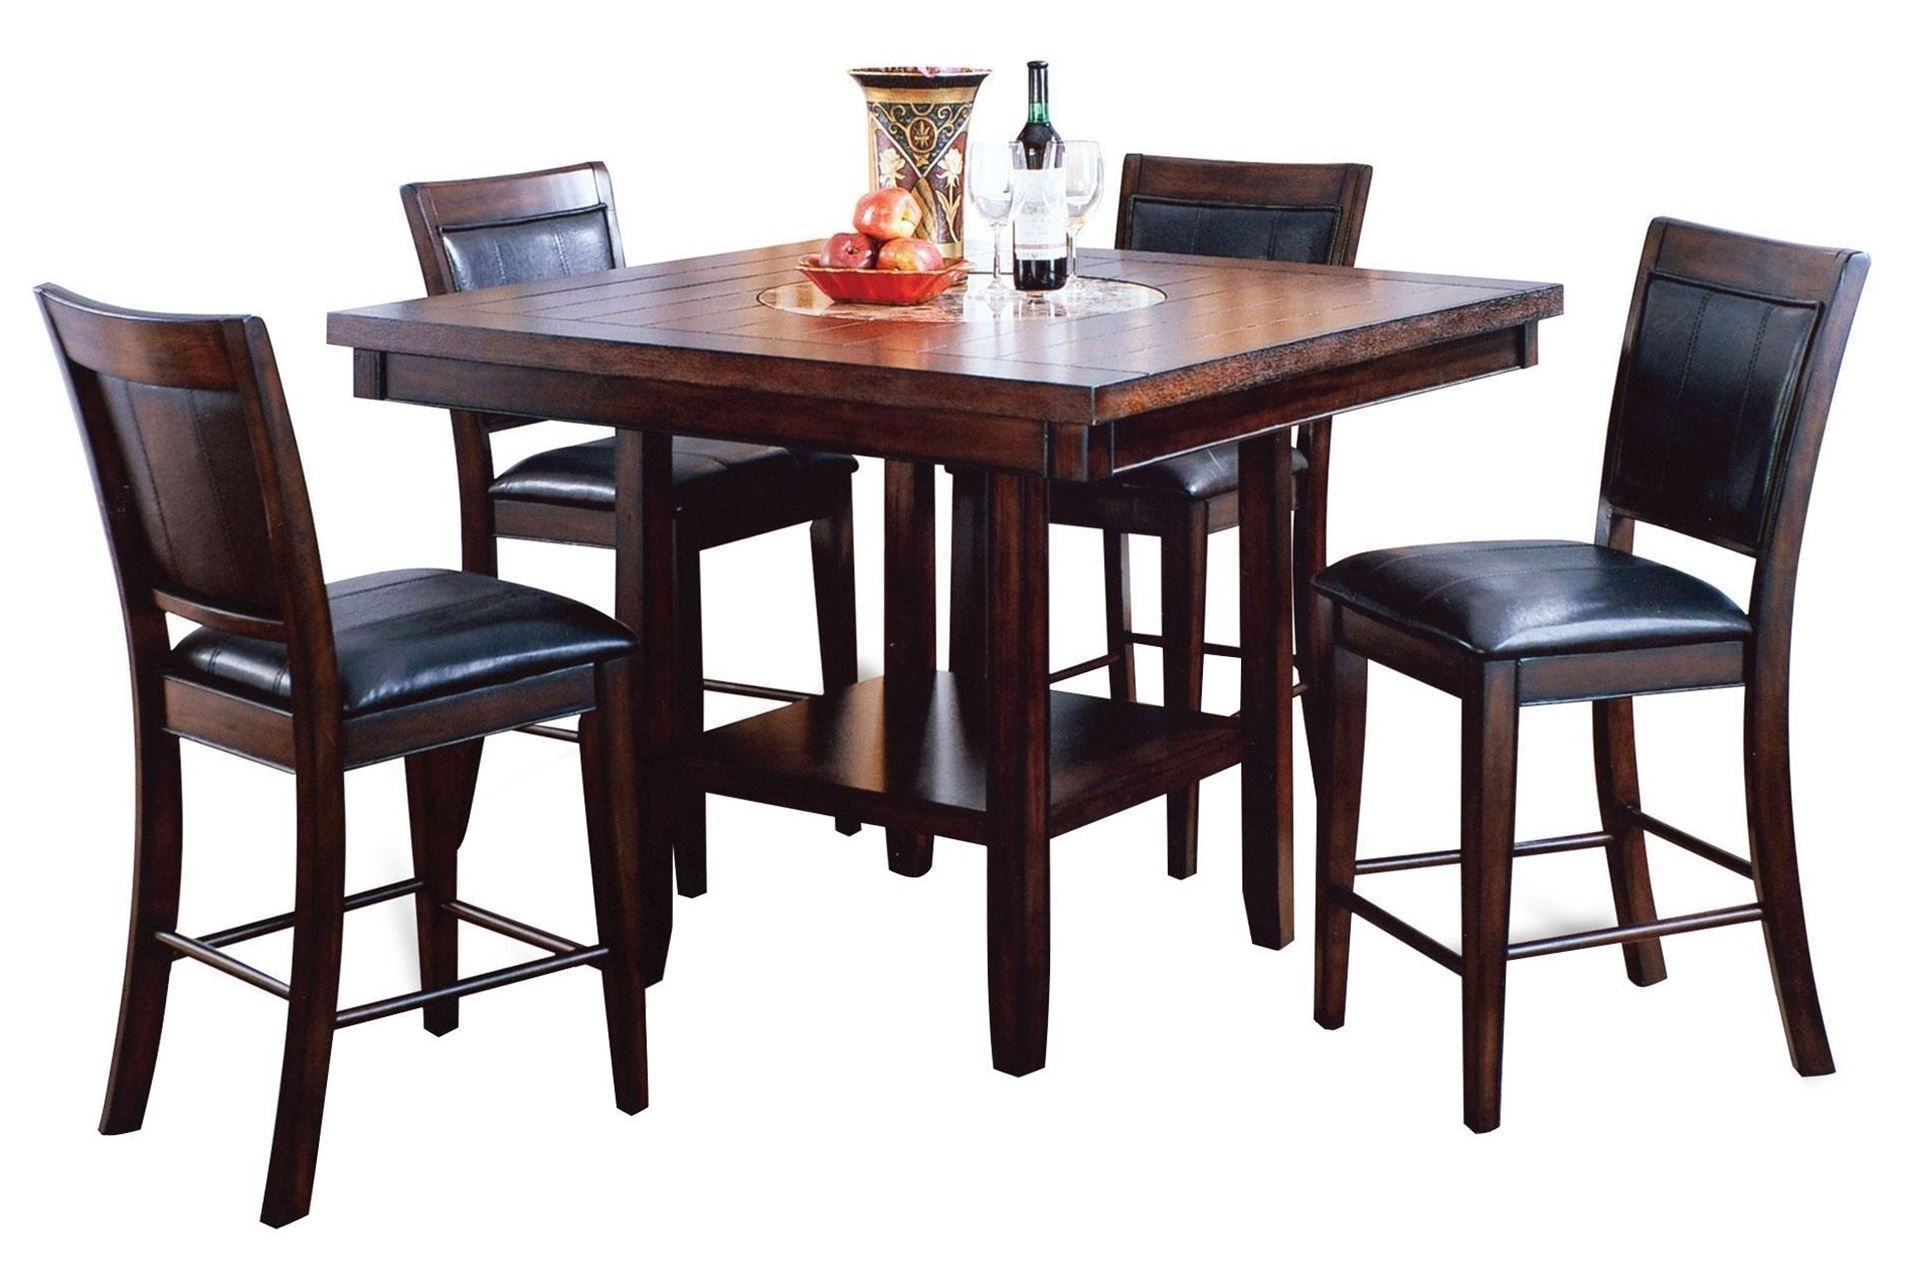 5 Piece Counter Set, Harper, Espresso, Kitchen & Dining Furniture Pertaining To Recent Harper 5 Piece Counter Sets (Image 2 of 20)